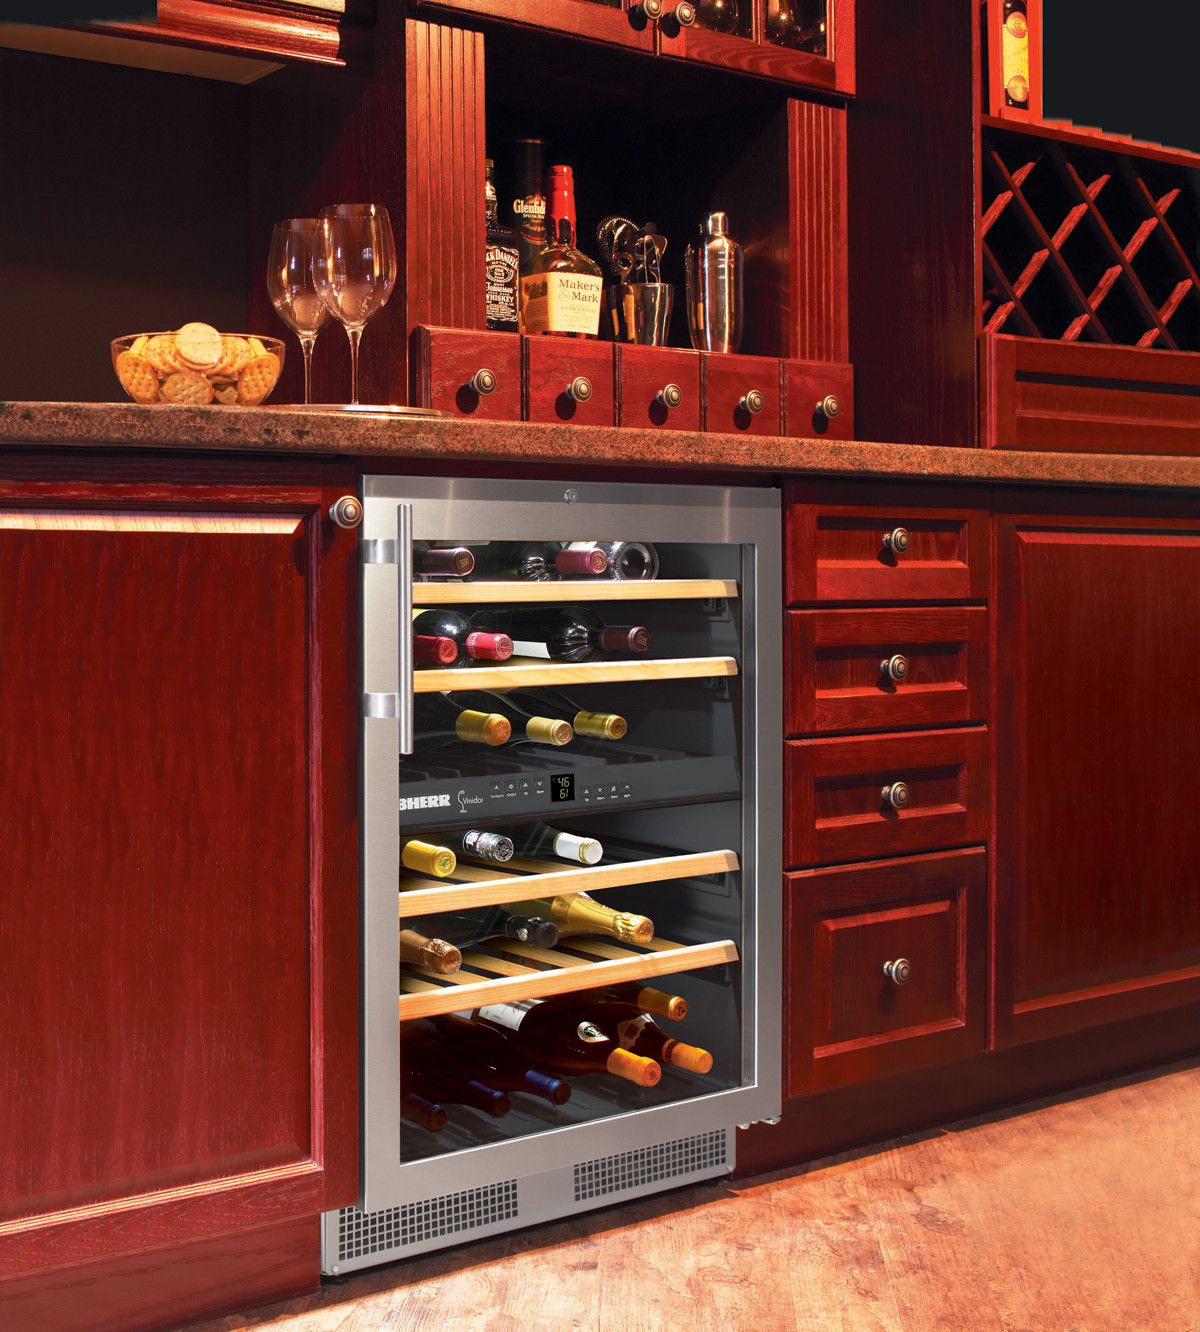 99 Freestanding Wine Cooler Cabinet Kitchen Decorating Ideas Themes Check More At Http W Wine Storage Cabinets Wine Room Design Built In Wine Refrigerator